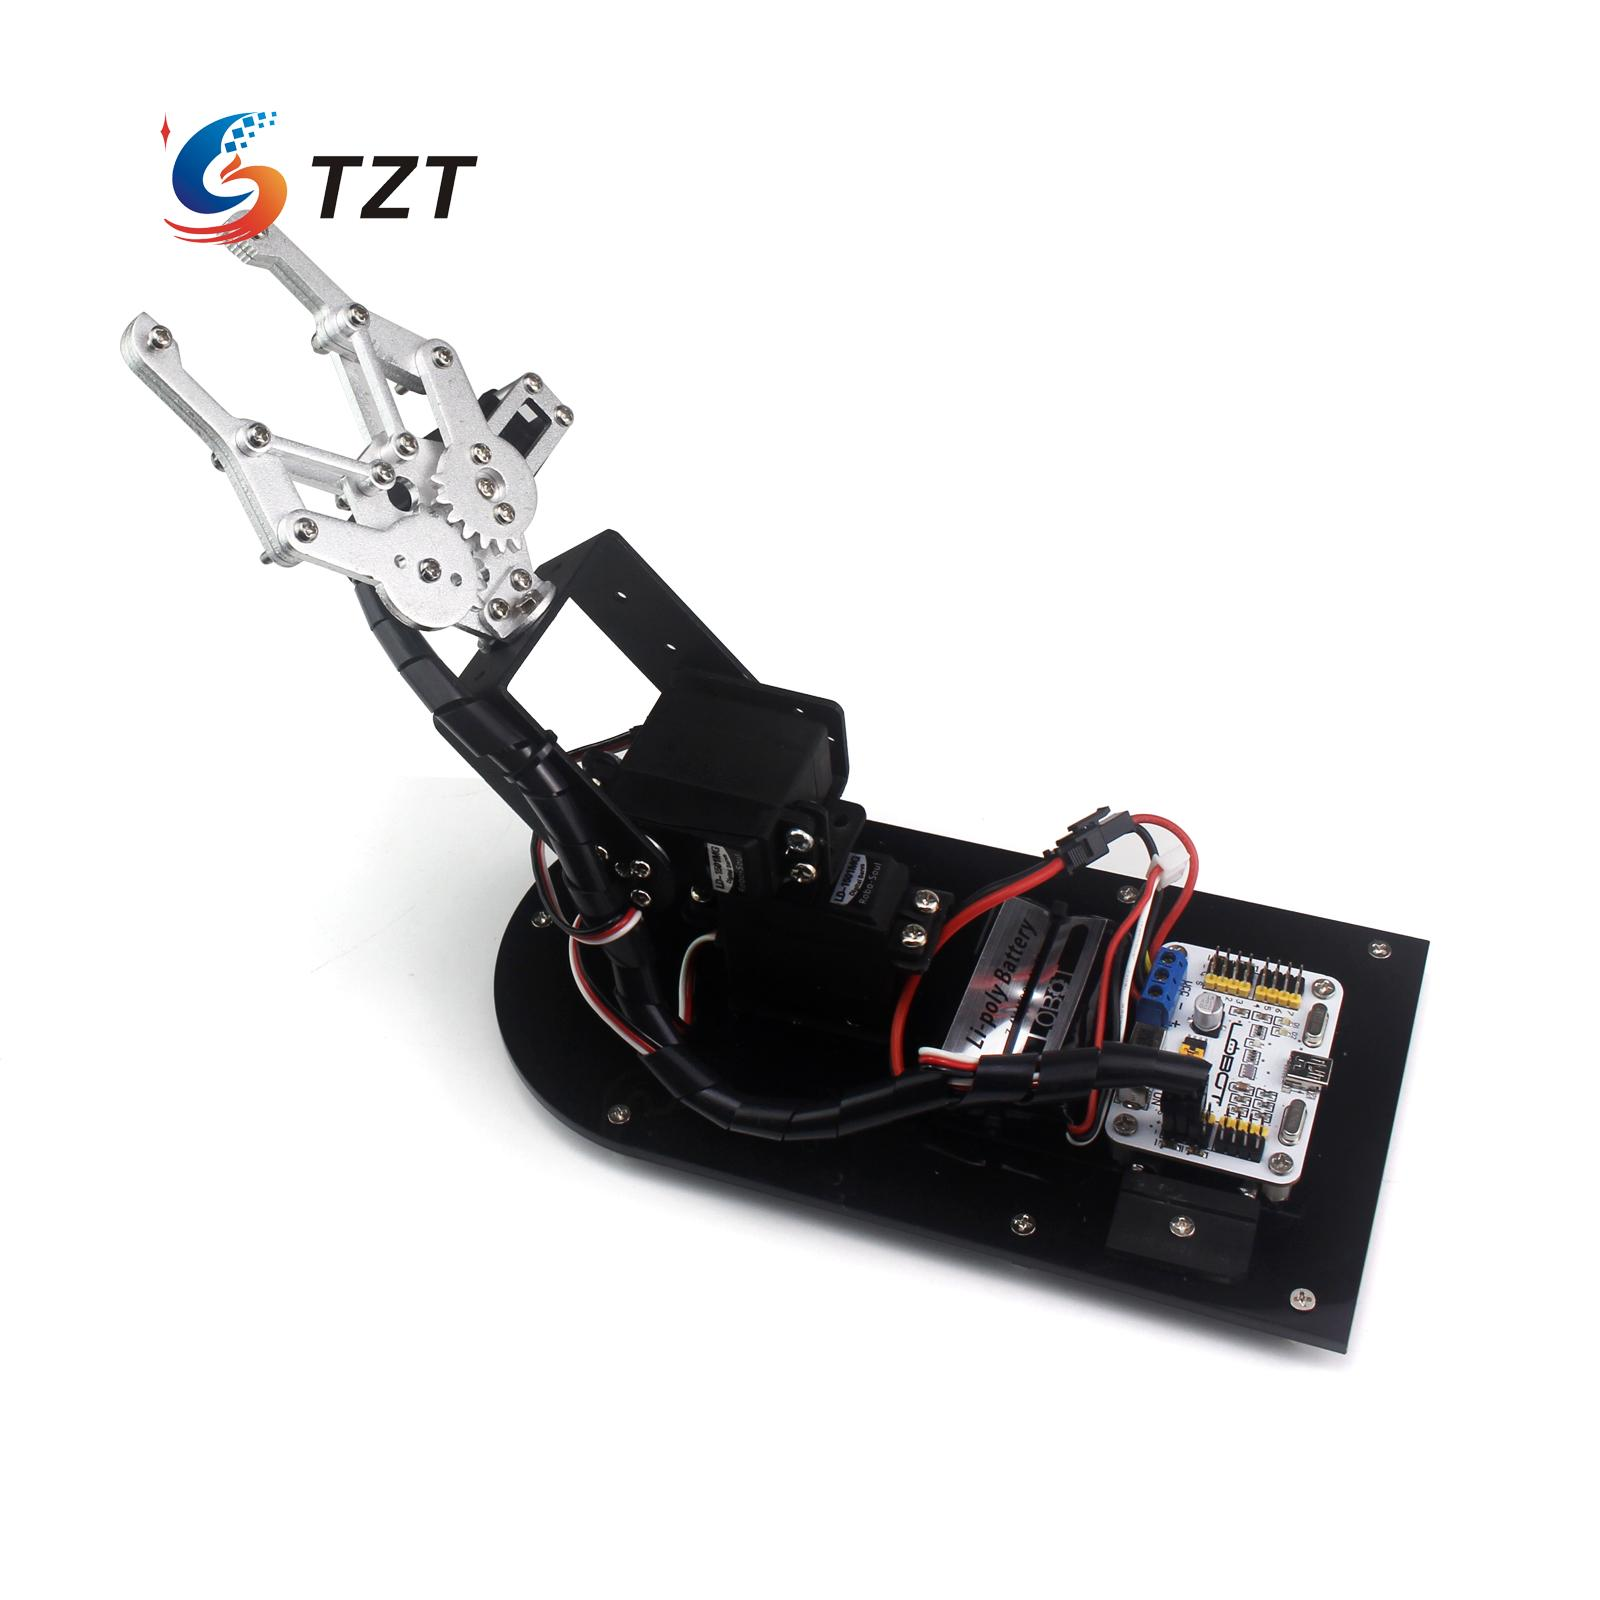 3DOF Robot Arm Mechanical Claw Frame with Base and Servos for Education Teaching DIY hot sale the mechanical arm rotating head base robot arm base free shiping